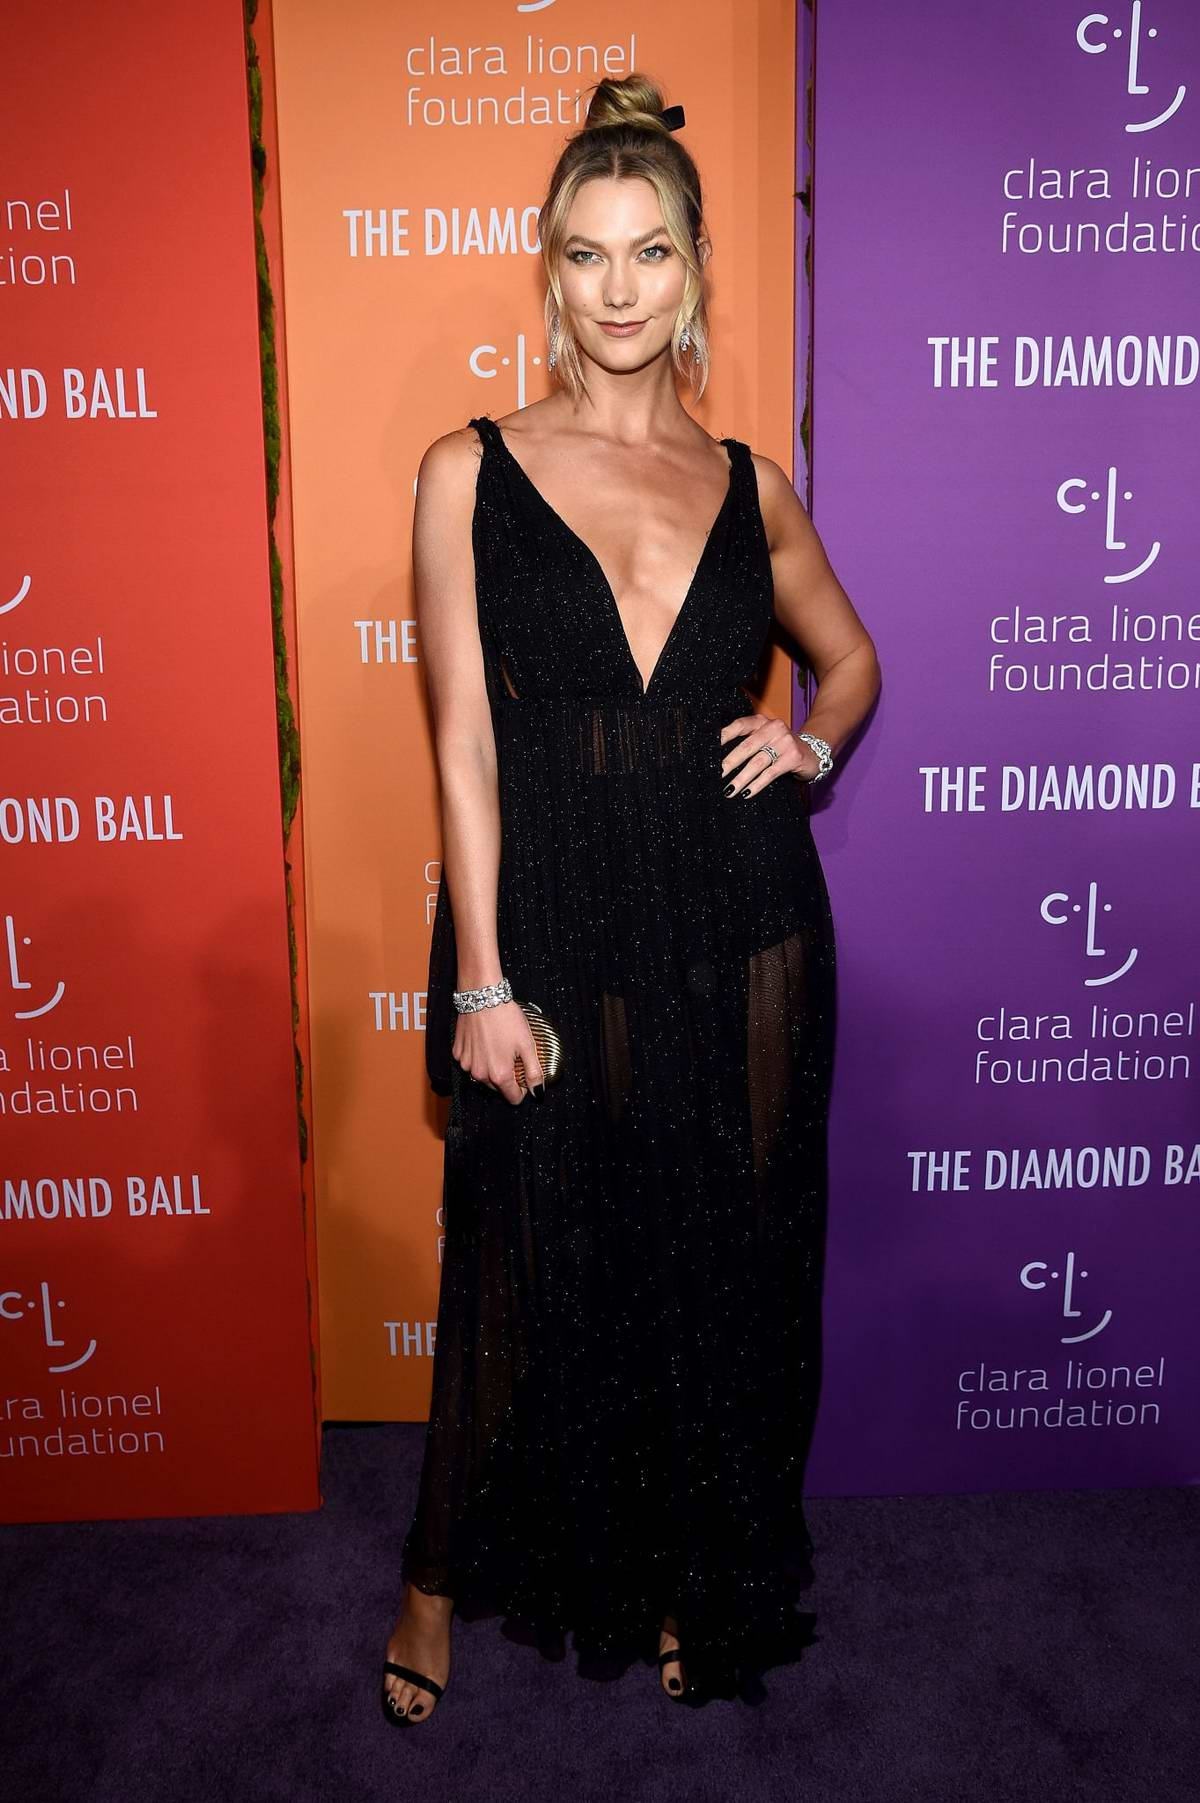 Karlie Kloss attends the 5th annual Diamond Ball at Cipriani Wall Street in New York City